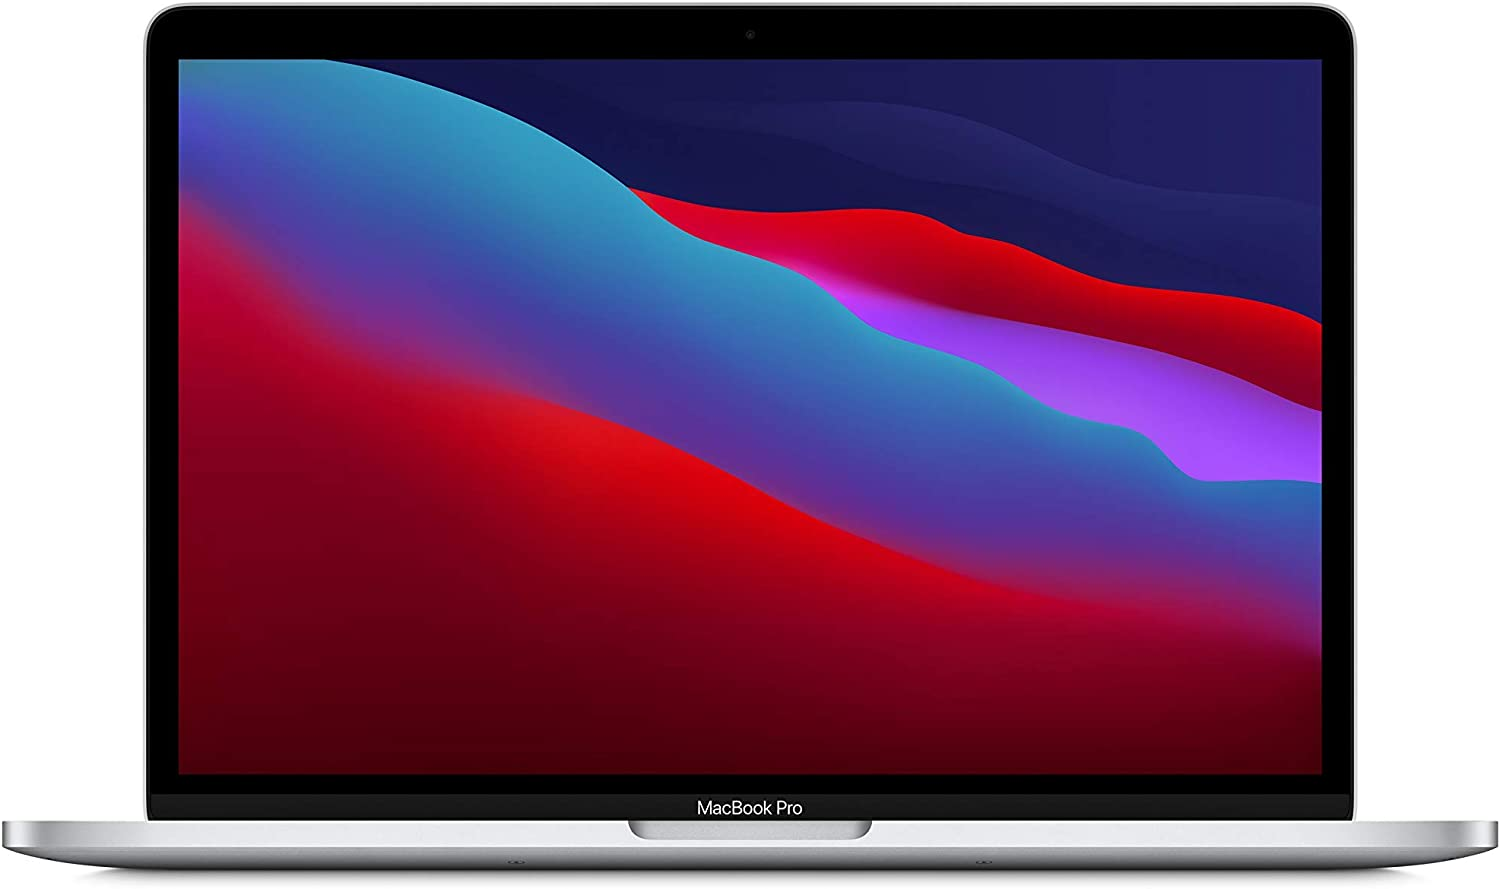 MacBook Pro Outlet SALE Apple M1 chip Memory 256GB Long-awaited 8GB SSD